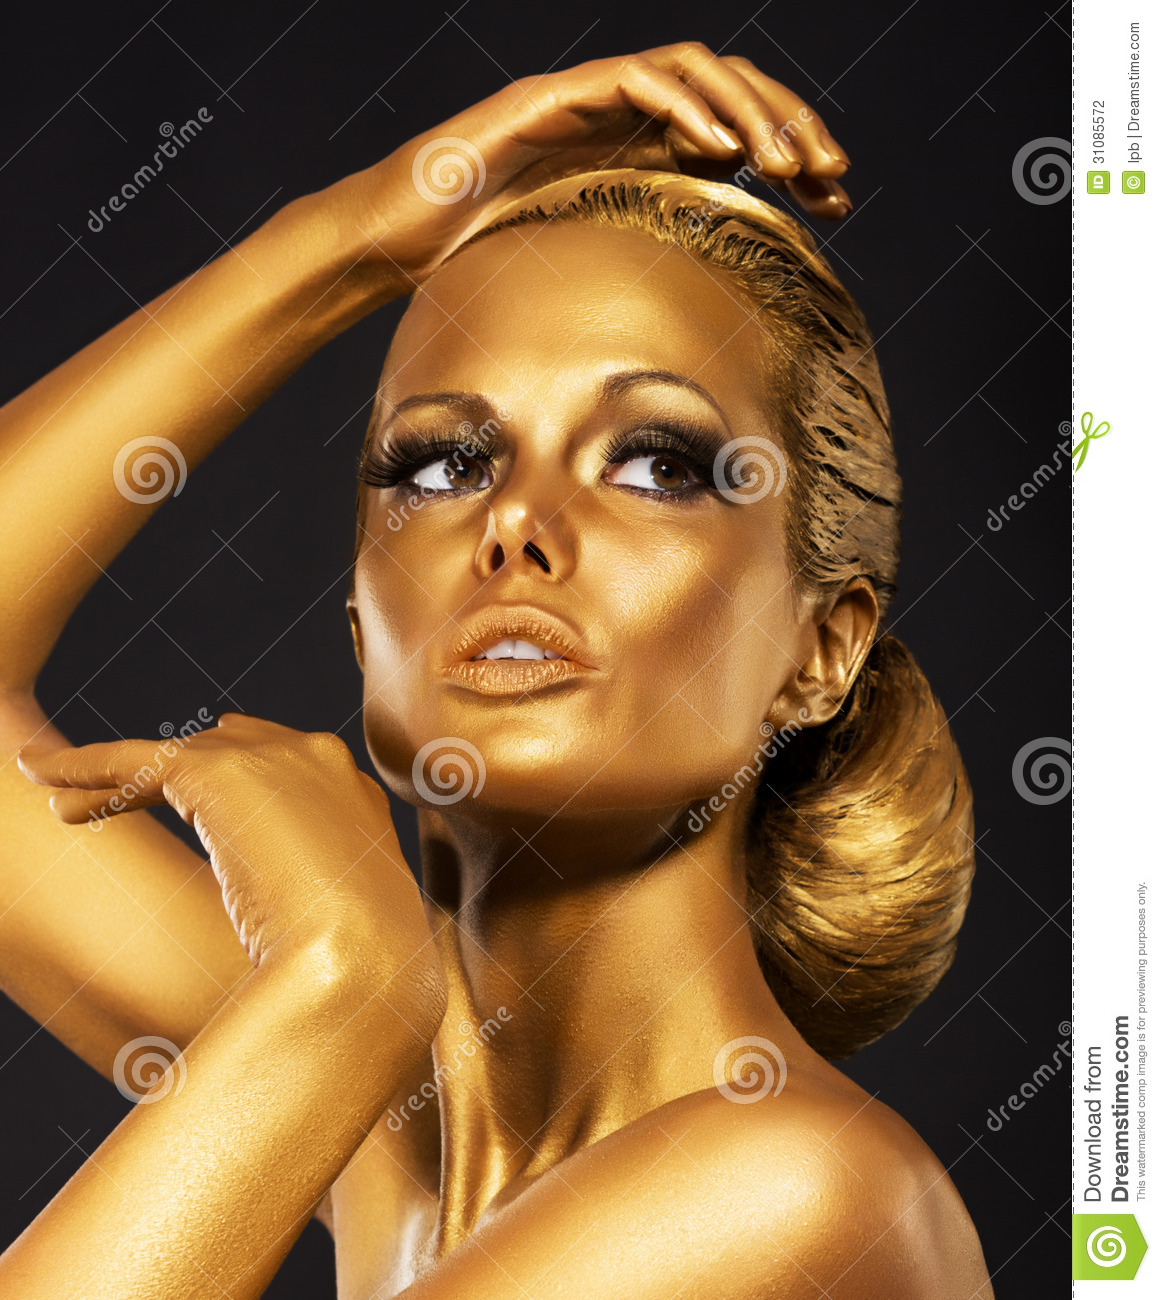 Golden Girls Reflexion Portrait Of Glossy Woman With Bright Golden